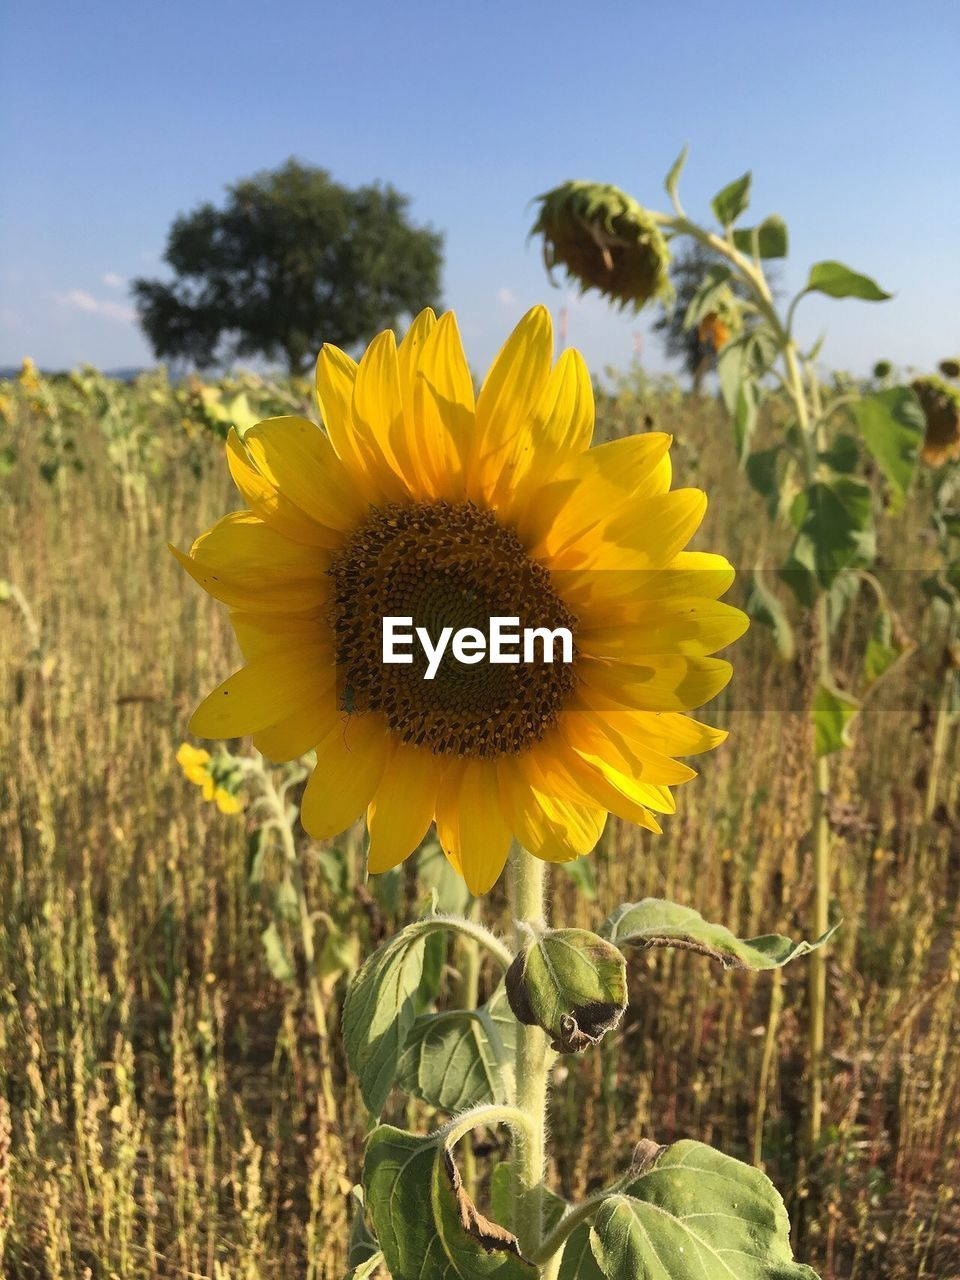 plant, flower, flowering plant, yellow, growth, freshness, sunflower, fragility, vulnerability, beauty in nature, flower head, land, field, nature, petal, close-up, inflorescence, focus on foreground, rural scene, landscape, pollen, no people, outdoors, plantation